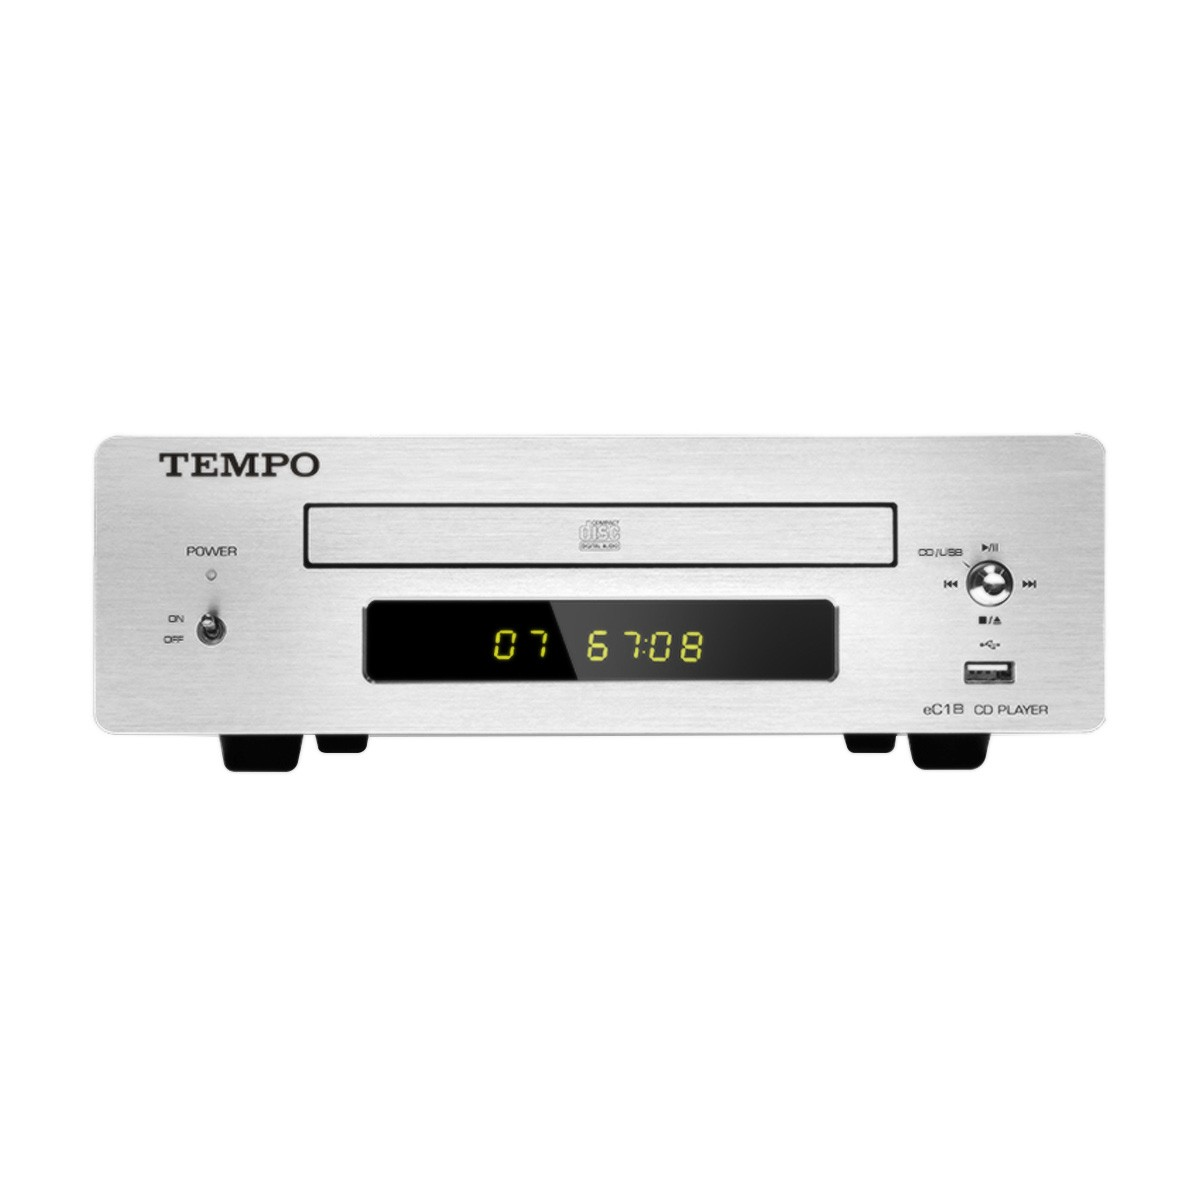 SHANLING TEMPO eC1B Audio CD Player and USB Flash Drive File Reader Silver